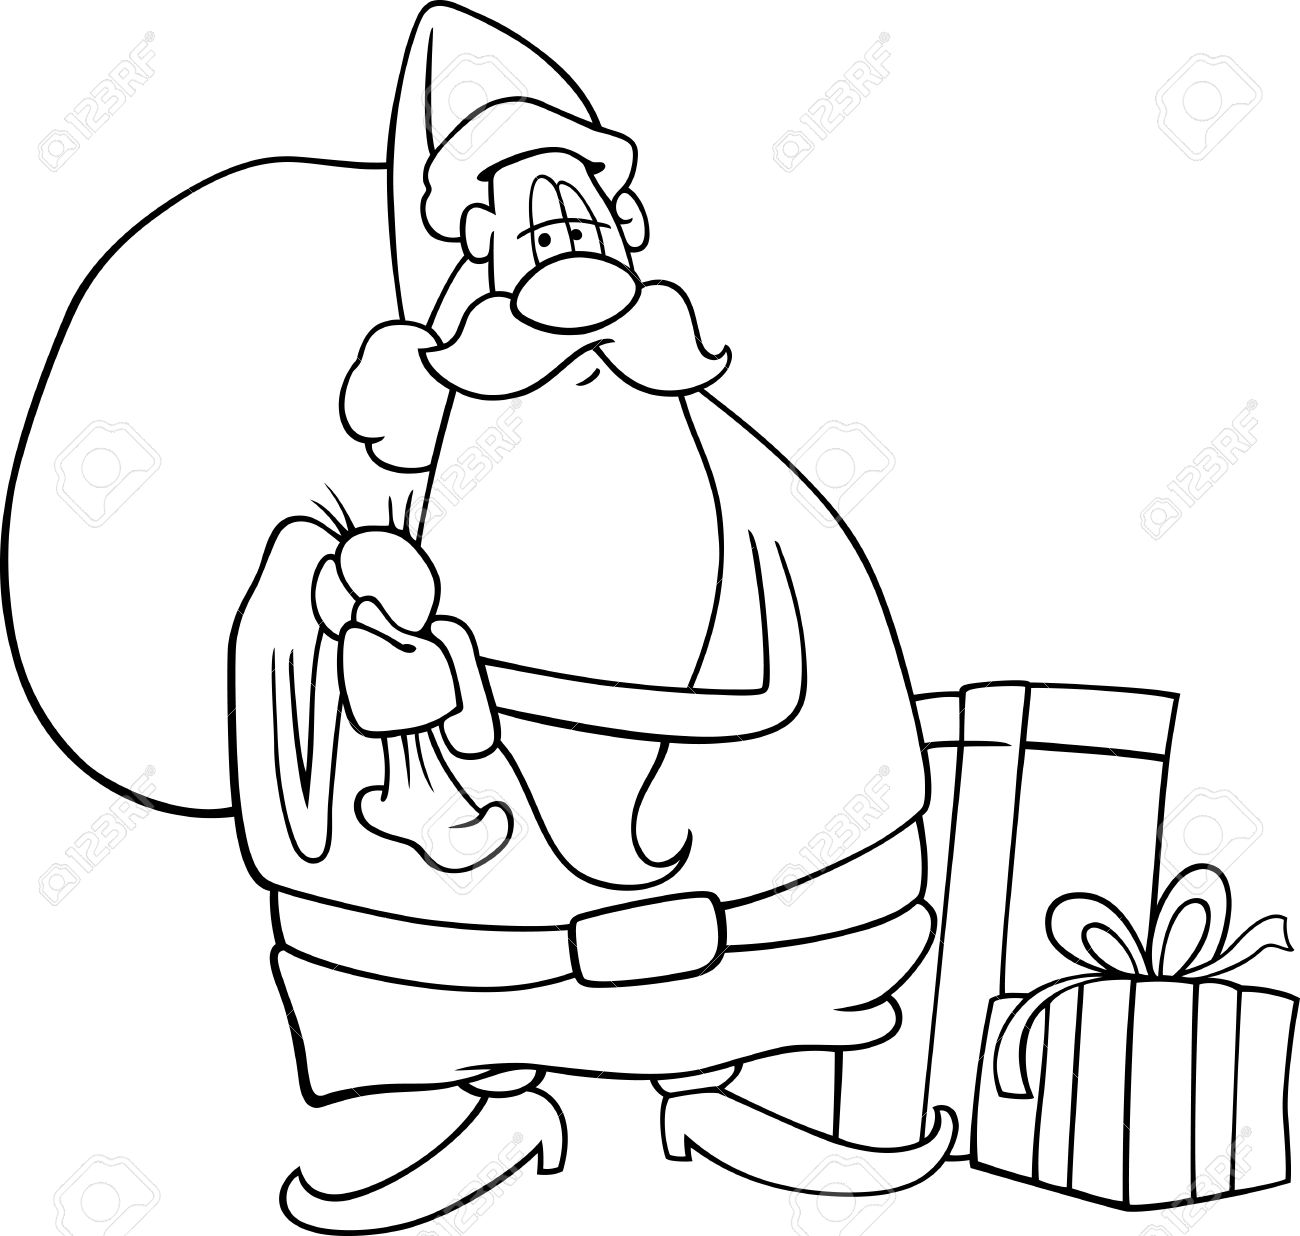 cartoon illustration of funny santa claus or papa noel with sack